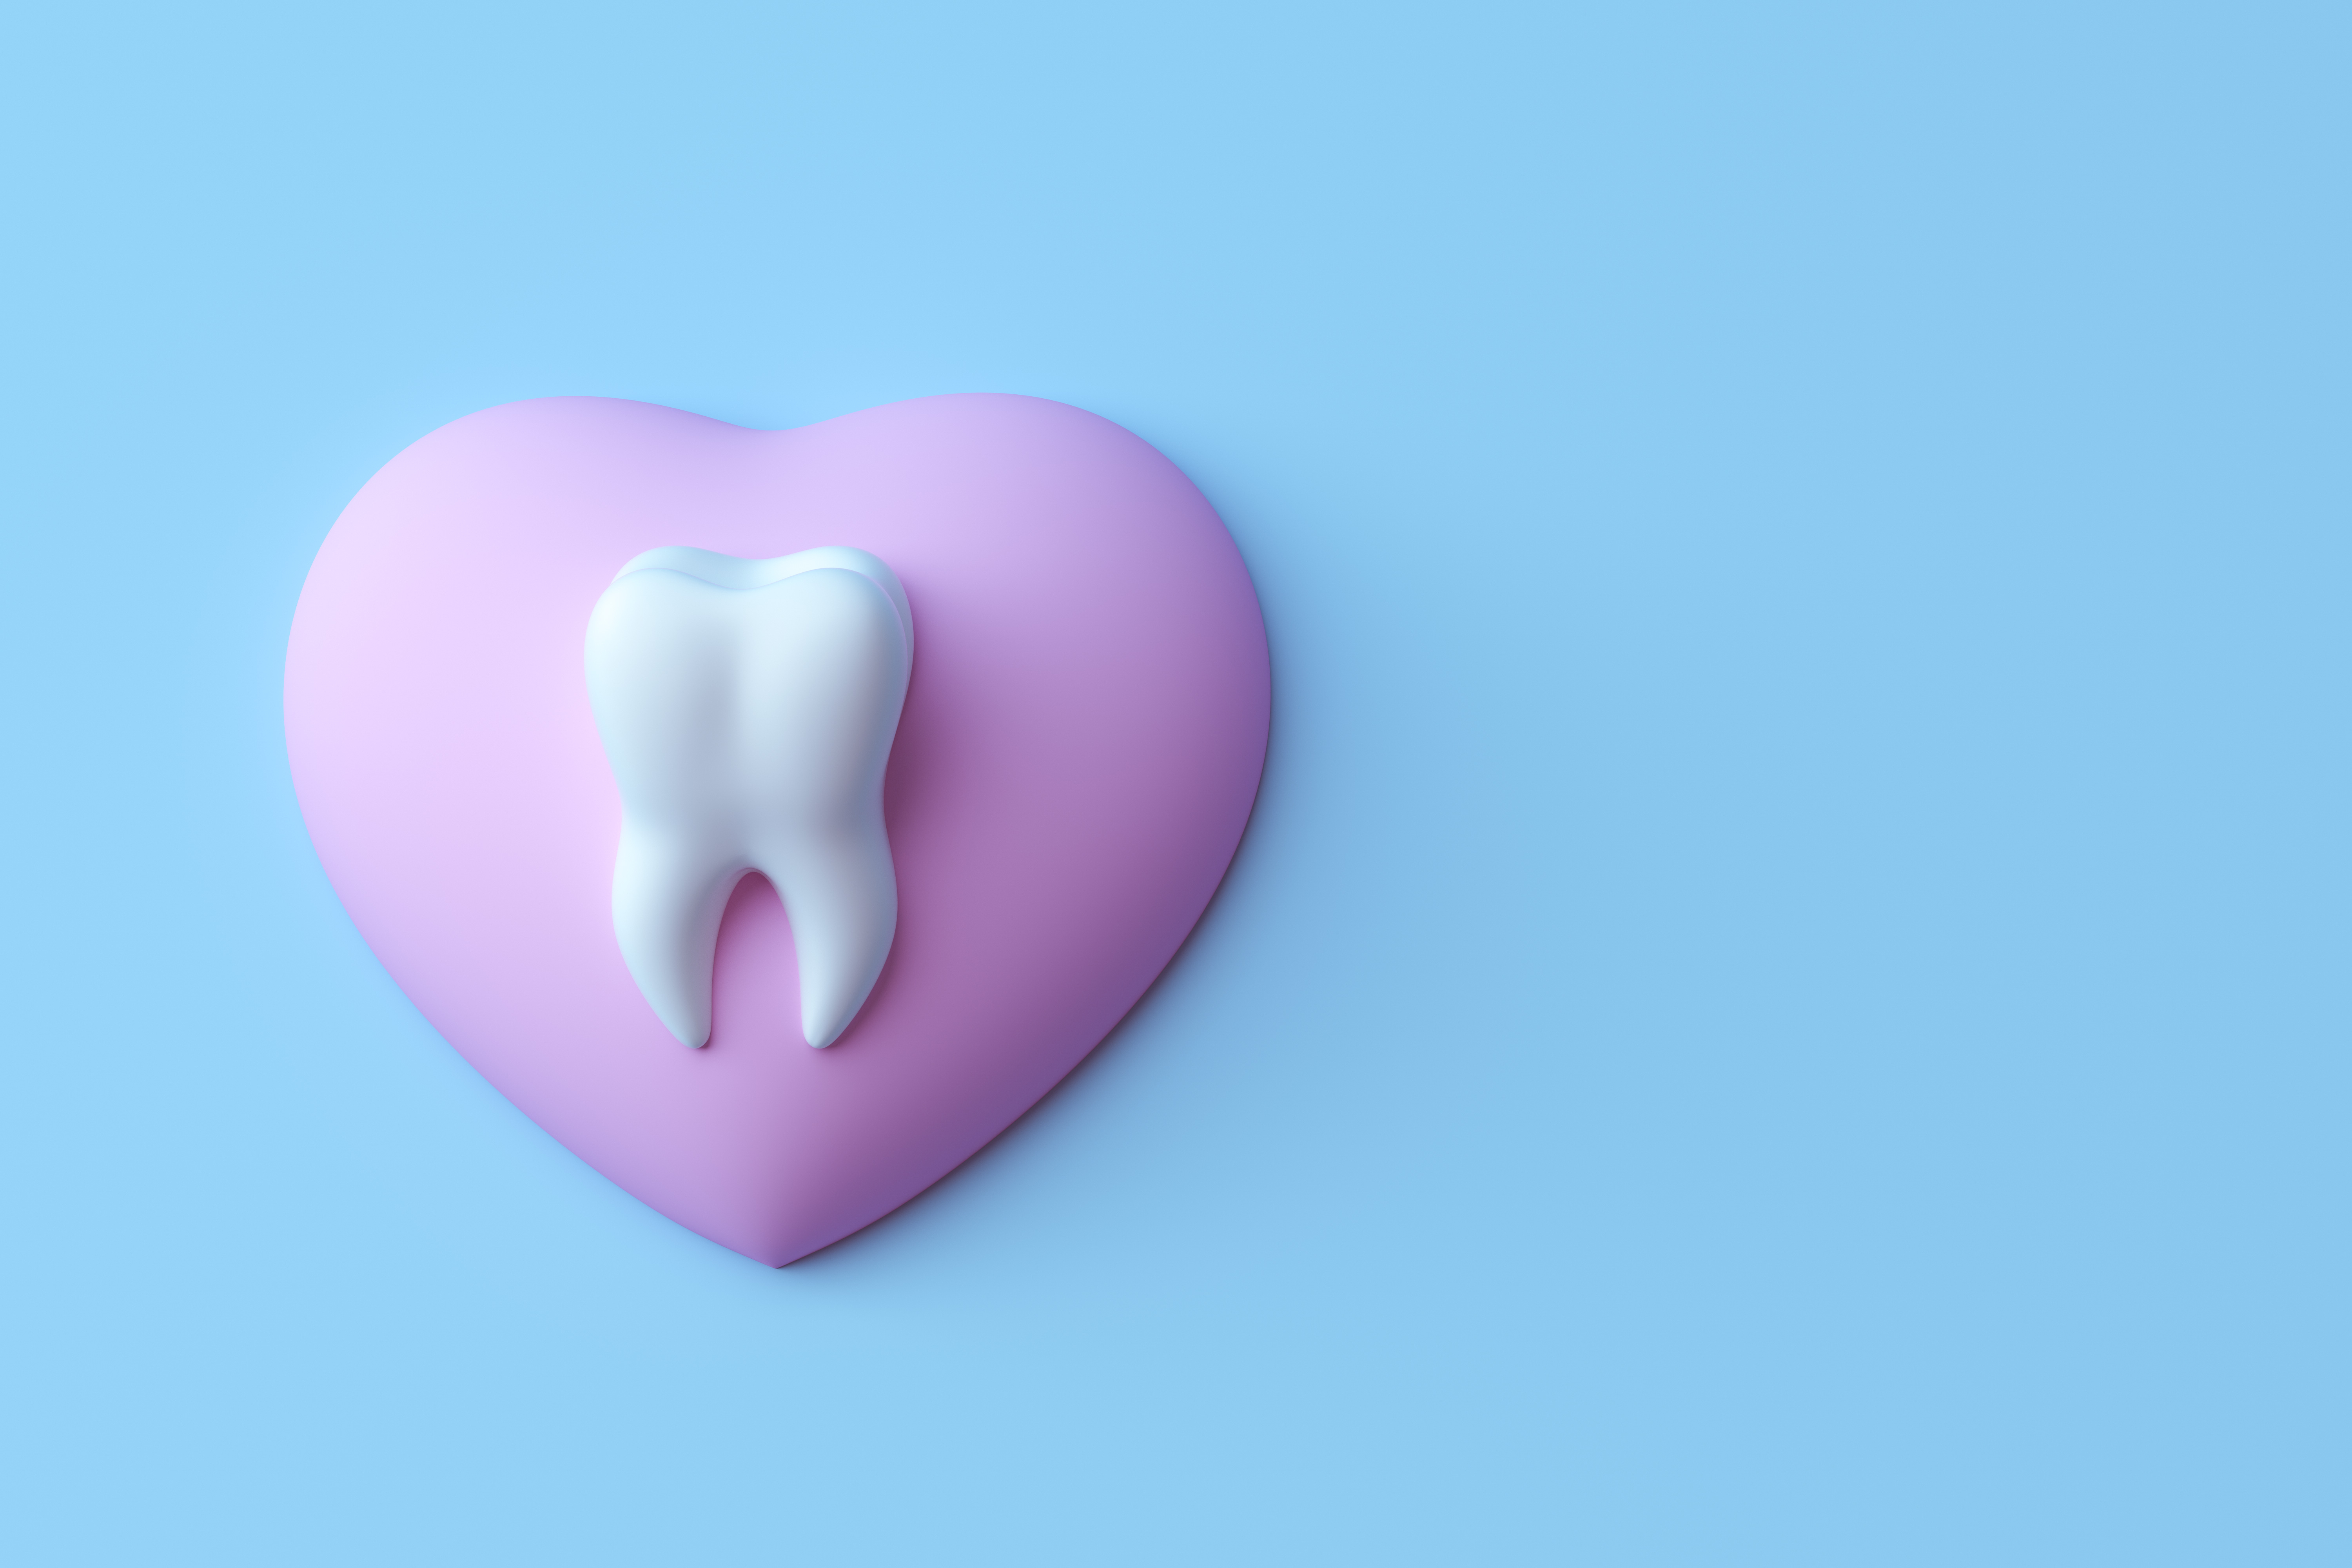 An image of a tooth on top of a pink heart with a blue background.